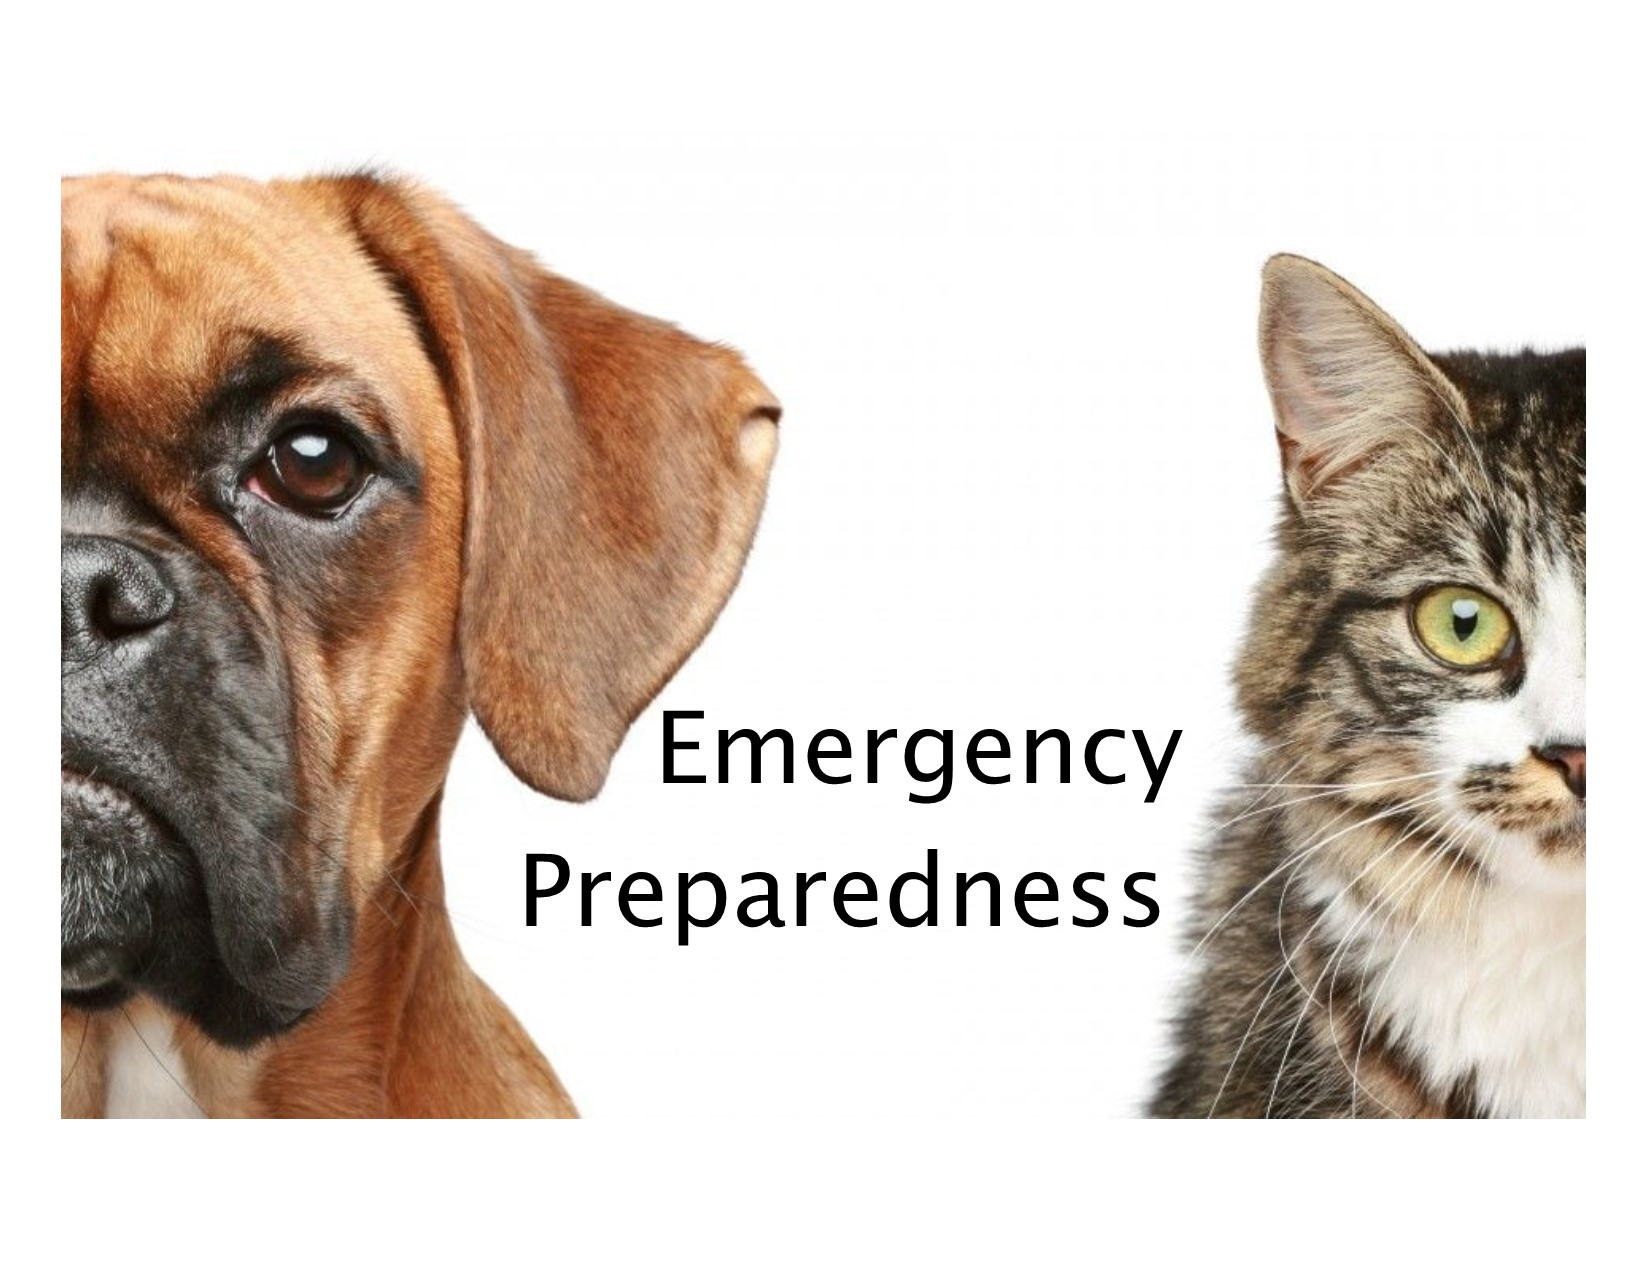 <a href='http://potsdamhumanesociety.org/wp/?p=7462'>Preparing Your Pets for Emergencies</a>